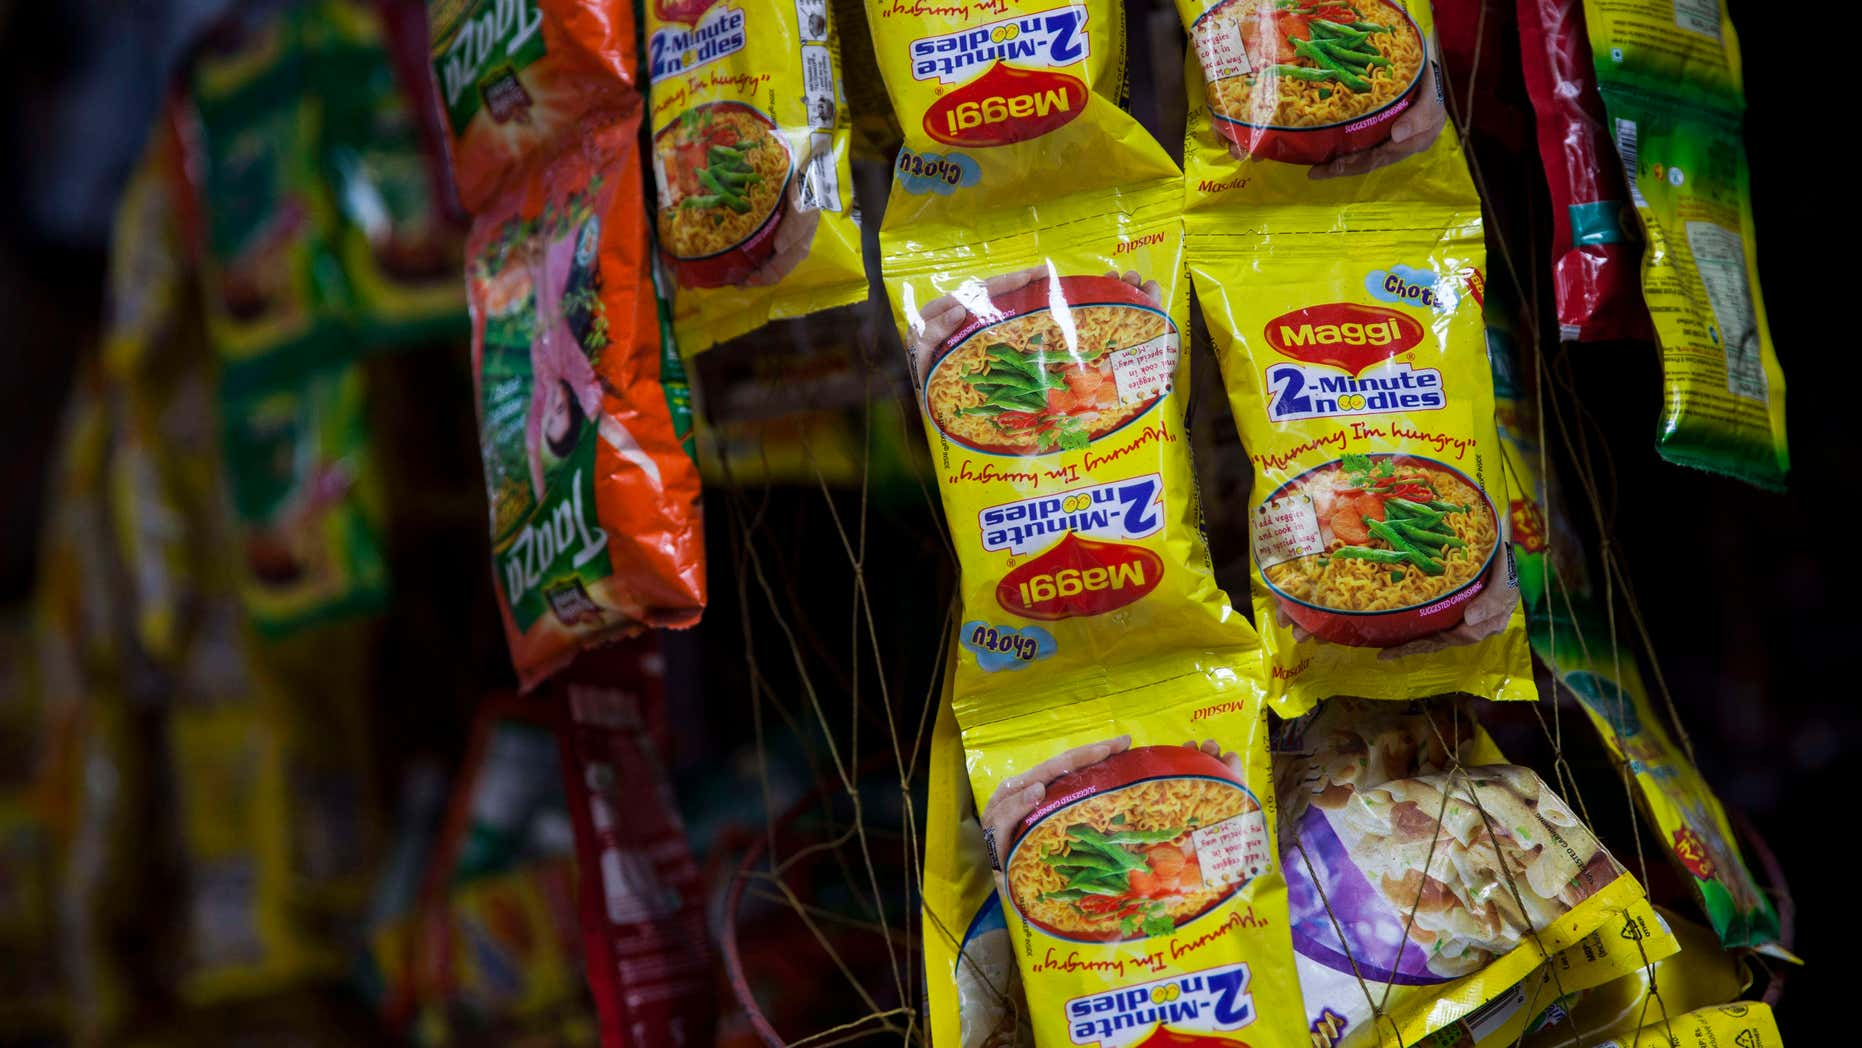 June 3, 2015: Packets of Maggi noodles hang on display at a shop in New Delhi, India.